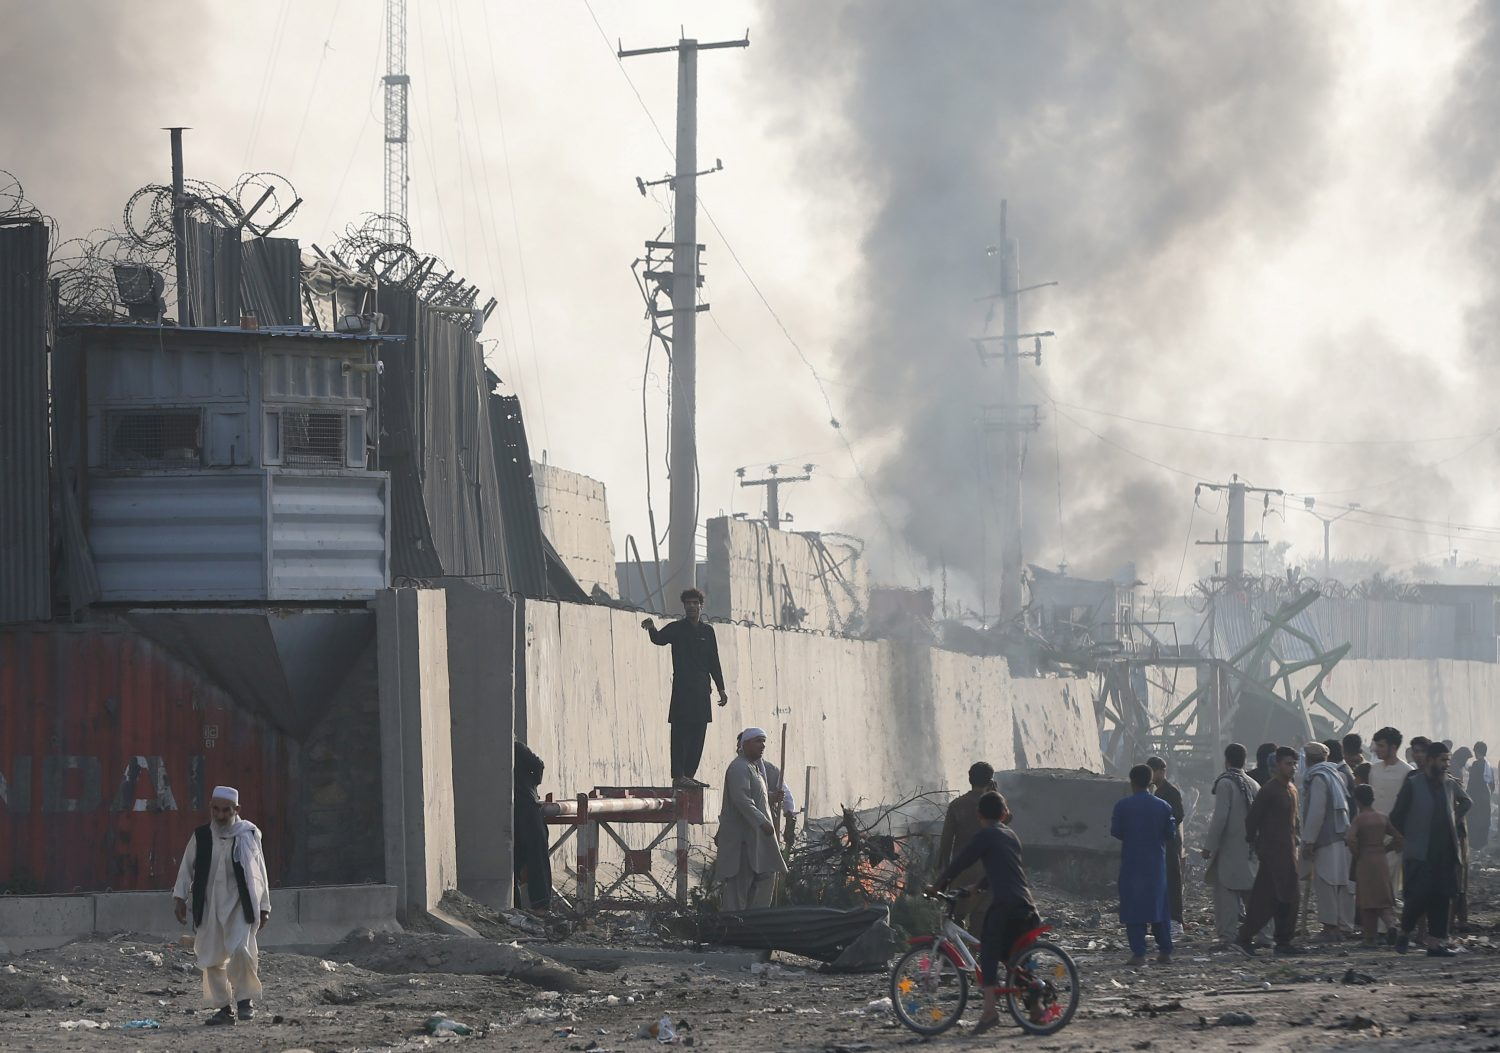 Angry Afghan protesters burn tires and shout slogans at the site of a blast in Kabul, Afghanistan September 3, 2019. REUTERS/Omar Sobhani